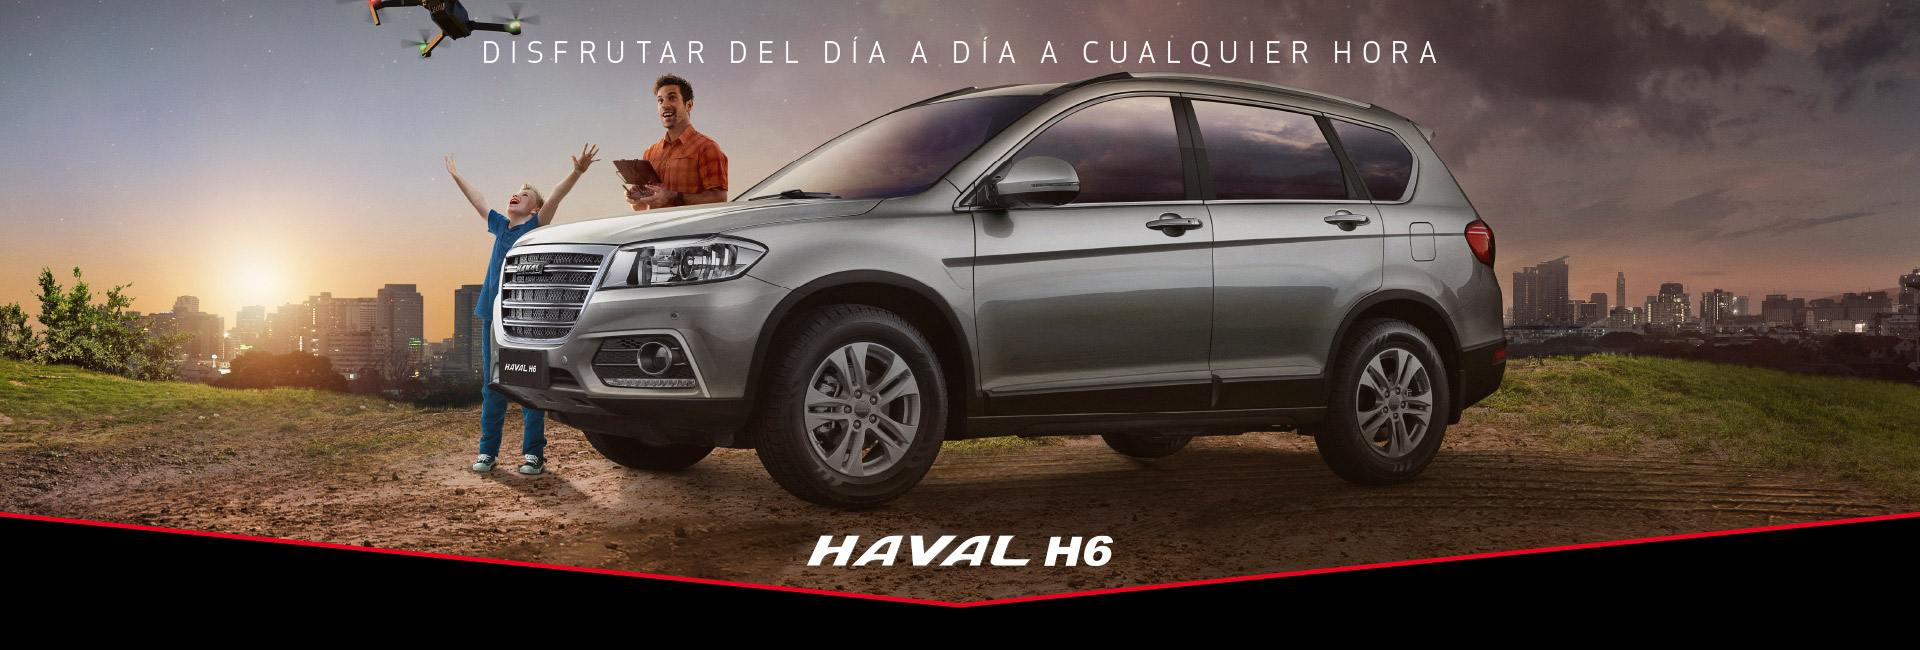 Haval H6 1.5 4x2 Active MT